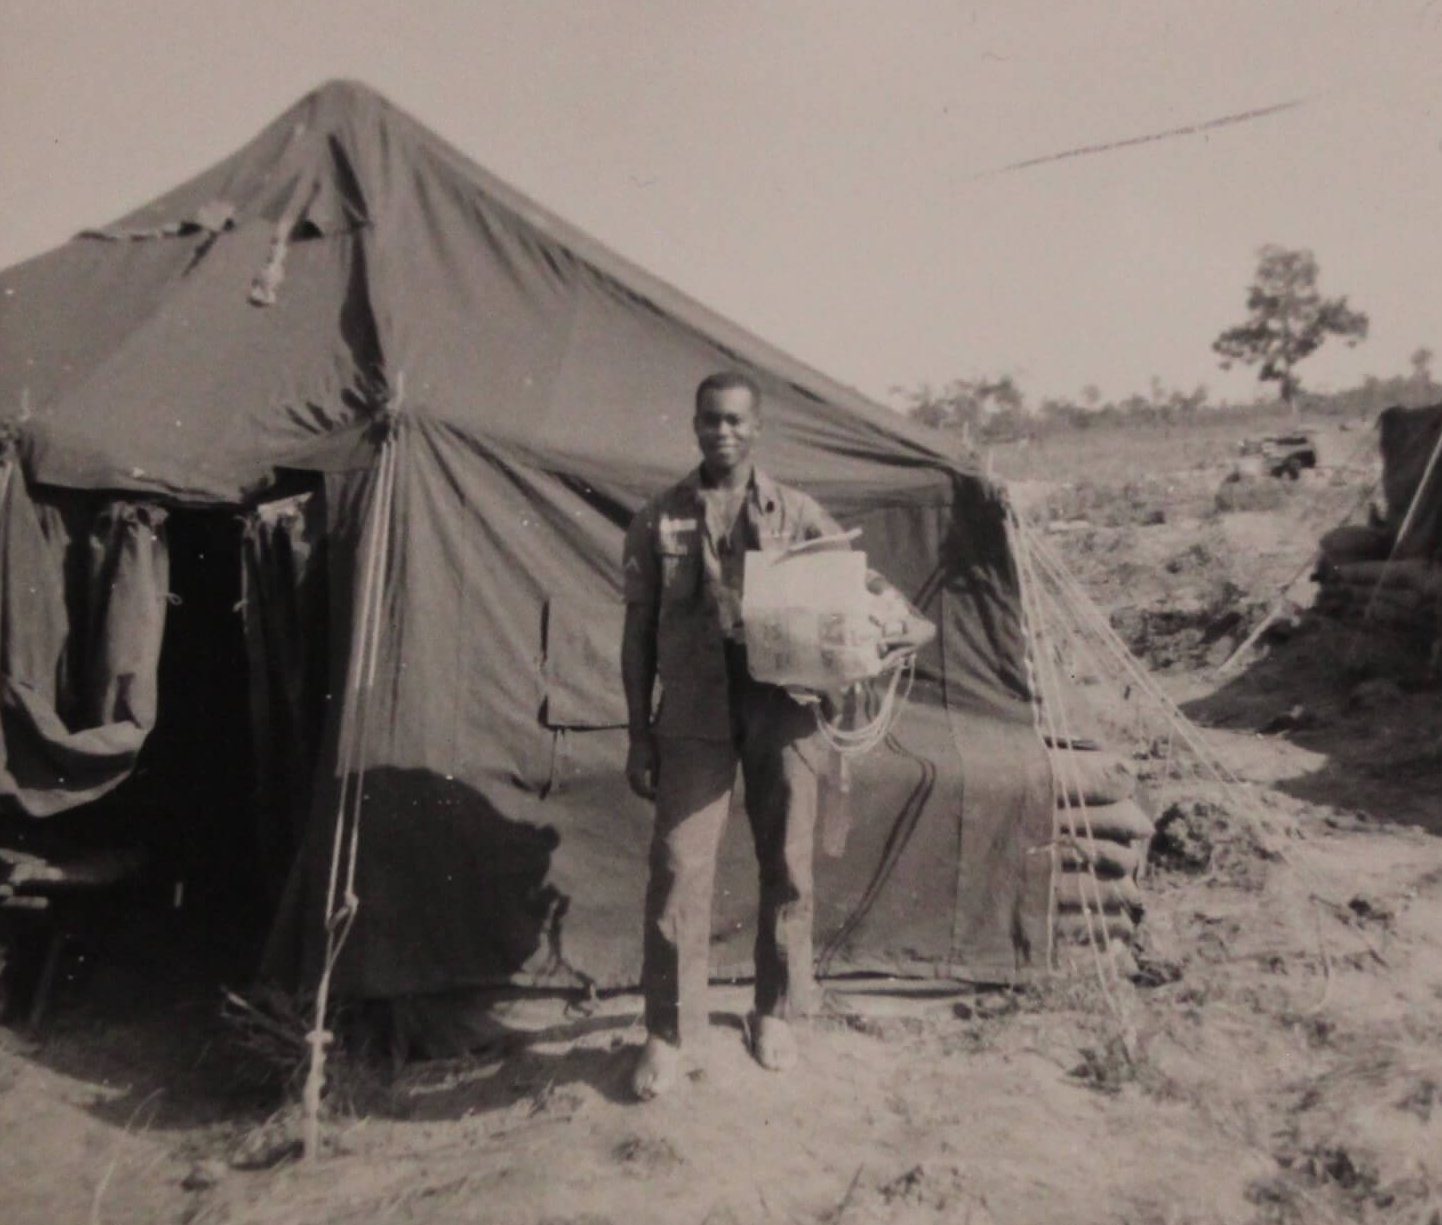 An African American soldier, standing outside a tent.